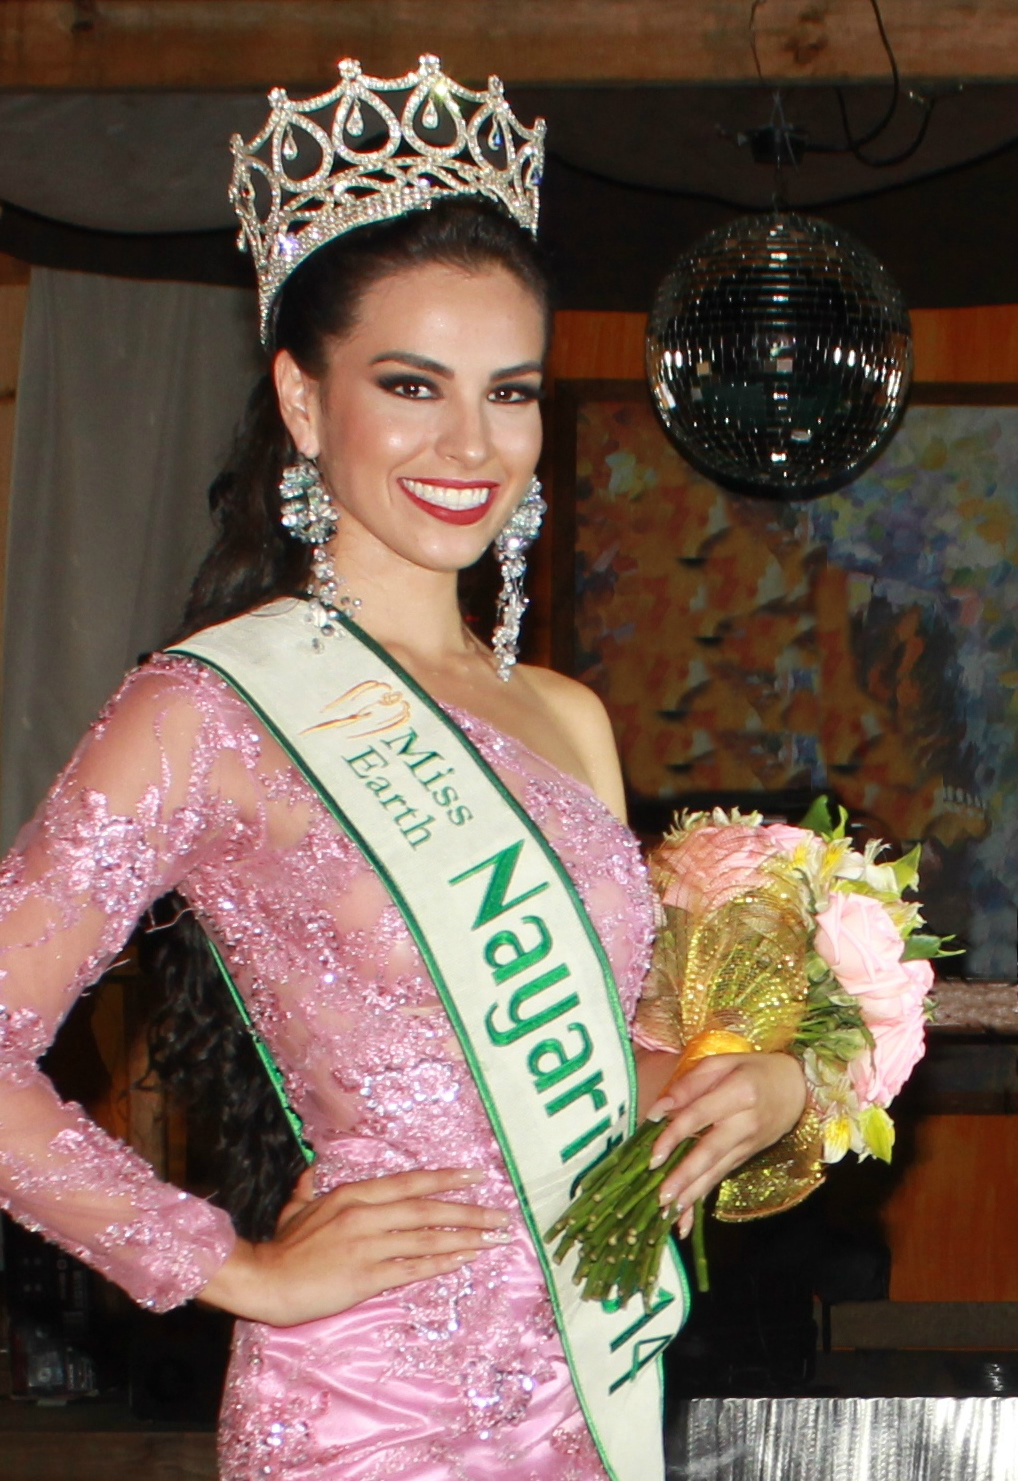 Miss Earth Nayarit 2014, Mónica Carrillo